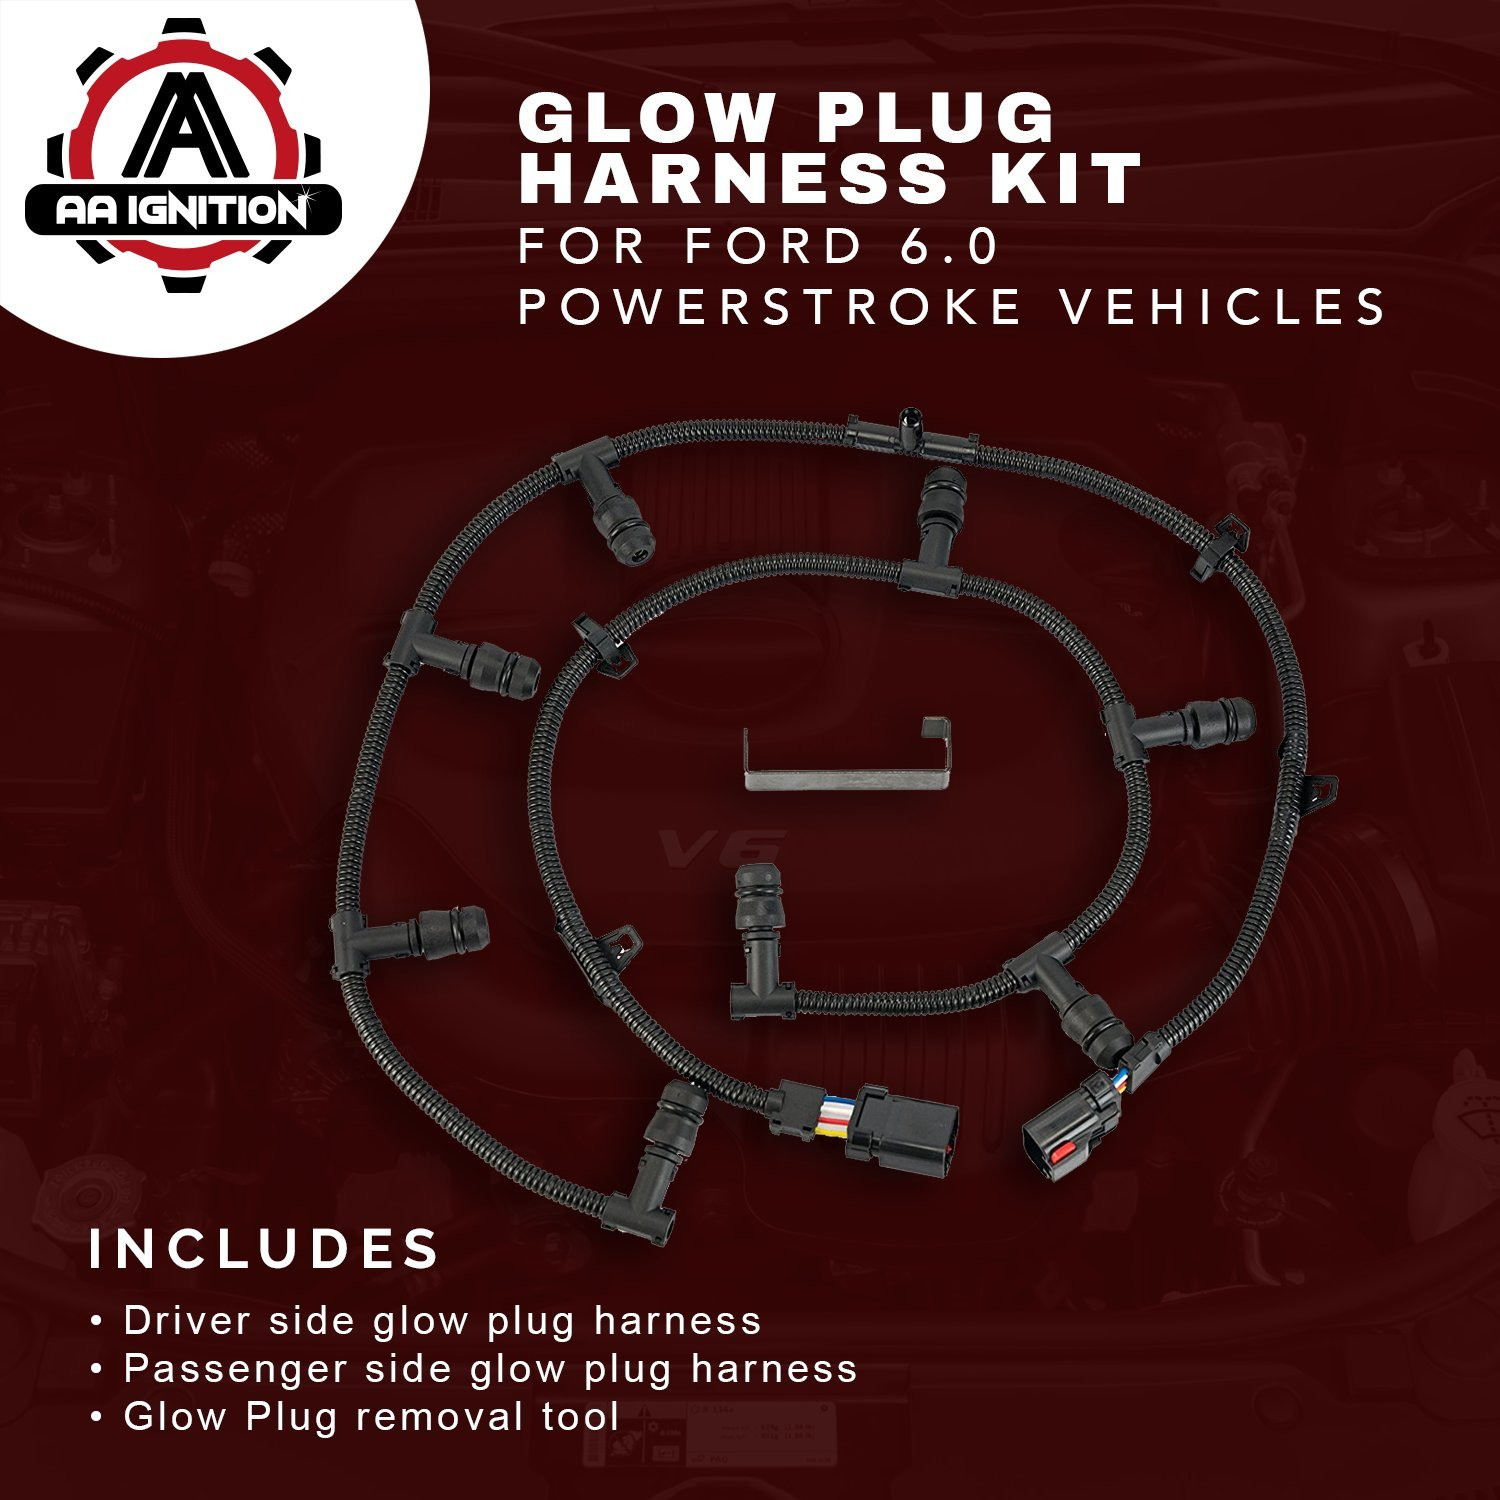 Glow Plug 6 0 Wire Harness System | Wiring Diagram  Powerstroke Glow Plug Wiring Diagram on 2001 f250 glow plug diagram, glow plug controller wiring diagram, 6.6 duramax glow plug diagram, 2001 ford f-250 wiring diagram, ford 6.0 diesel diagram, 6 0 gpcm diagram, cat glow plug wiring diagram, diesel glow plug diagram, 04 f350 glow plug wiring diagram, ford glow plug diagram, 1997 f250 glow plug controller diagram,